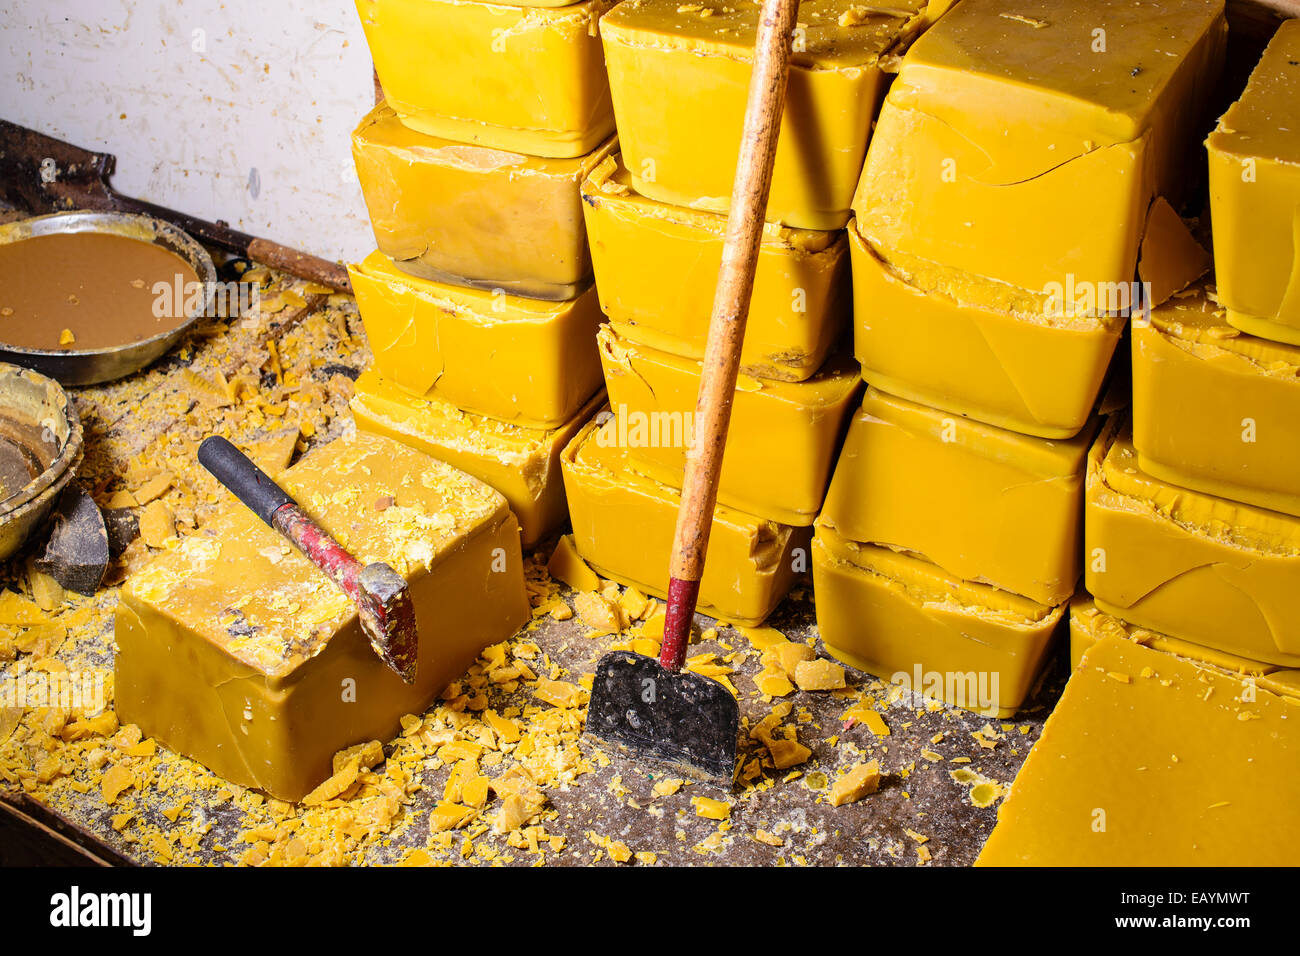 Blocks of beeswax for candle making. - Stock Image